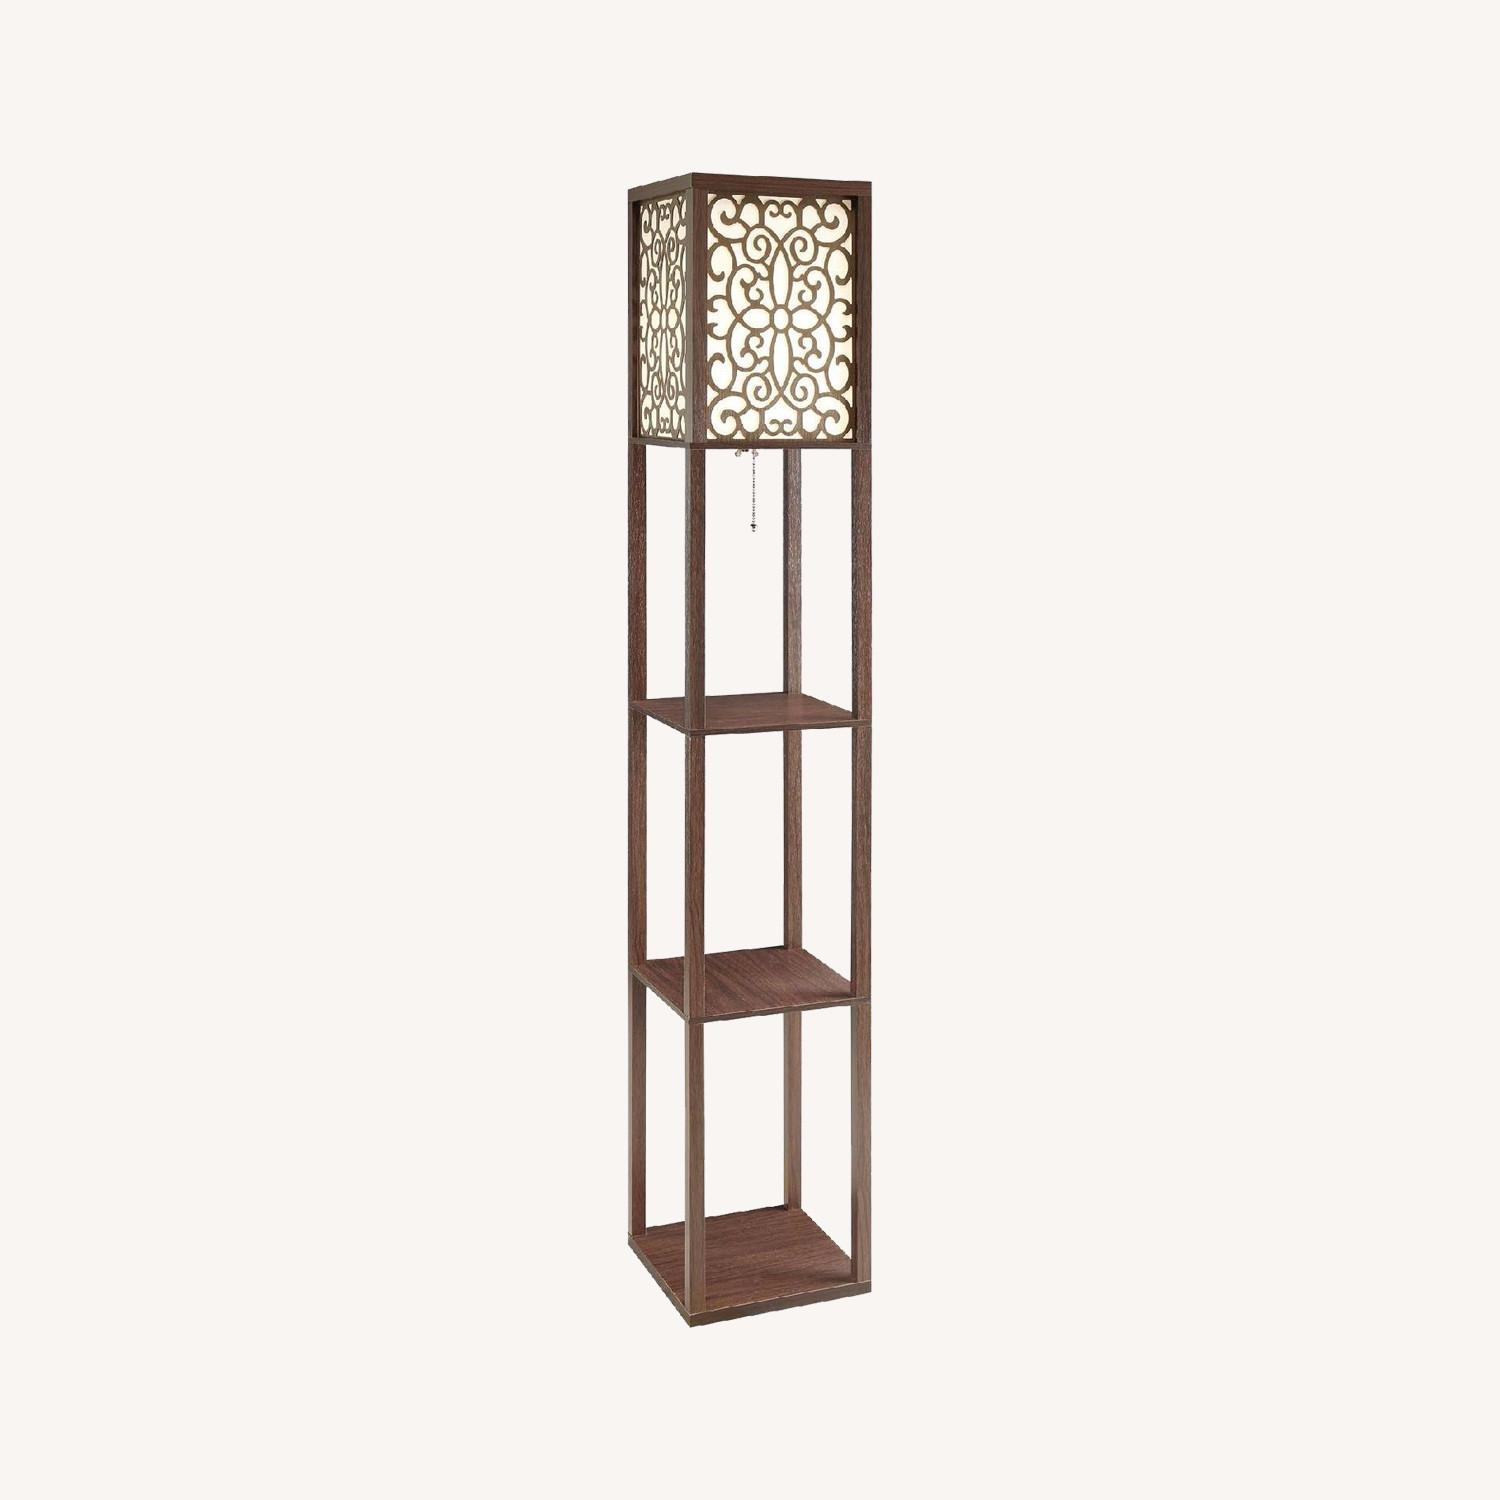 Floor Lamp with Shelves - image-0